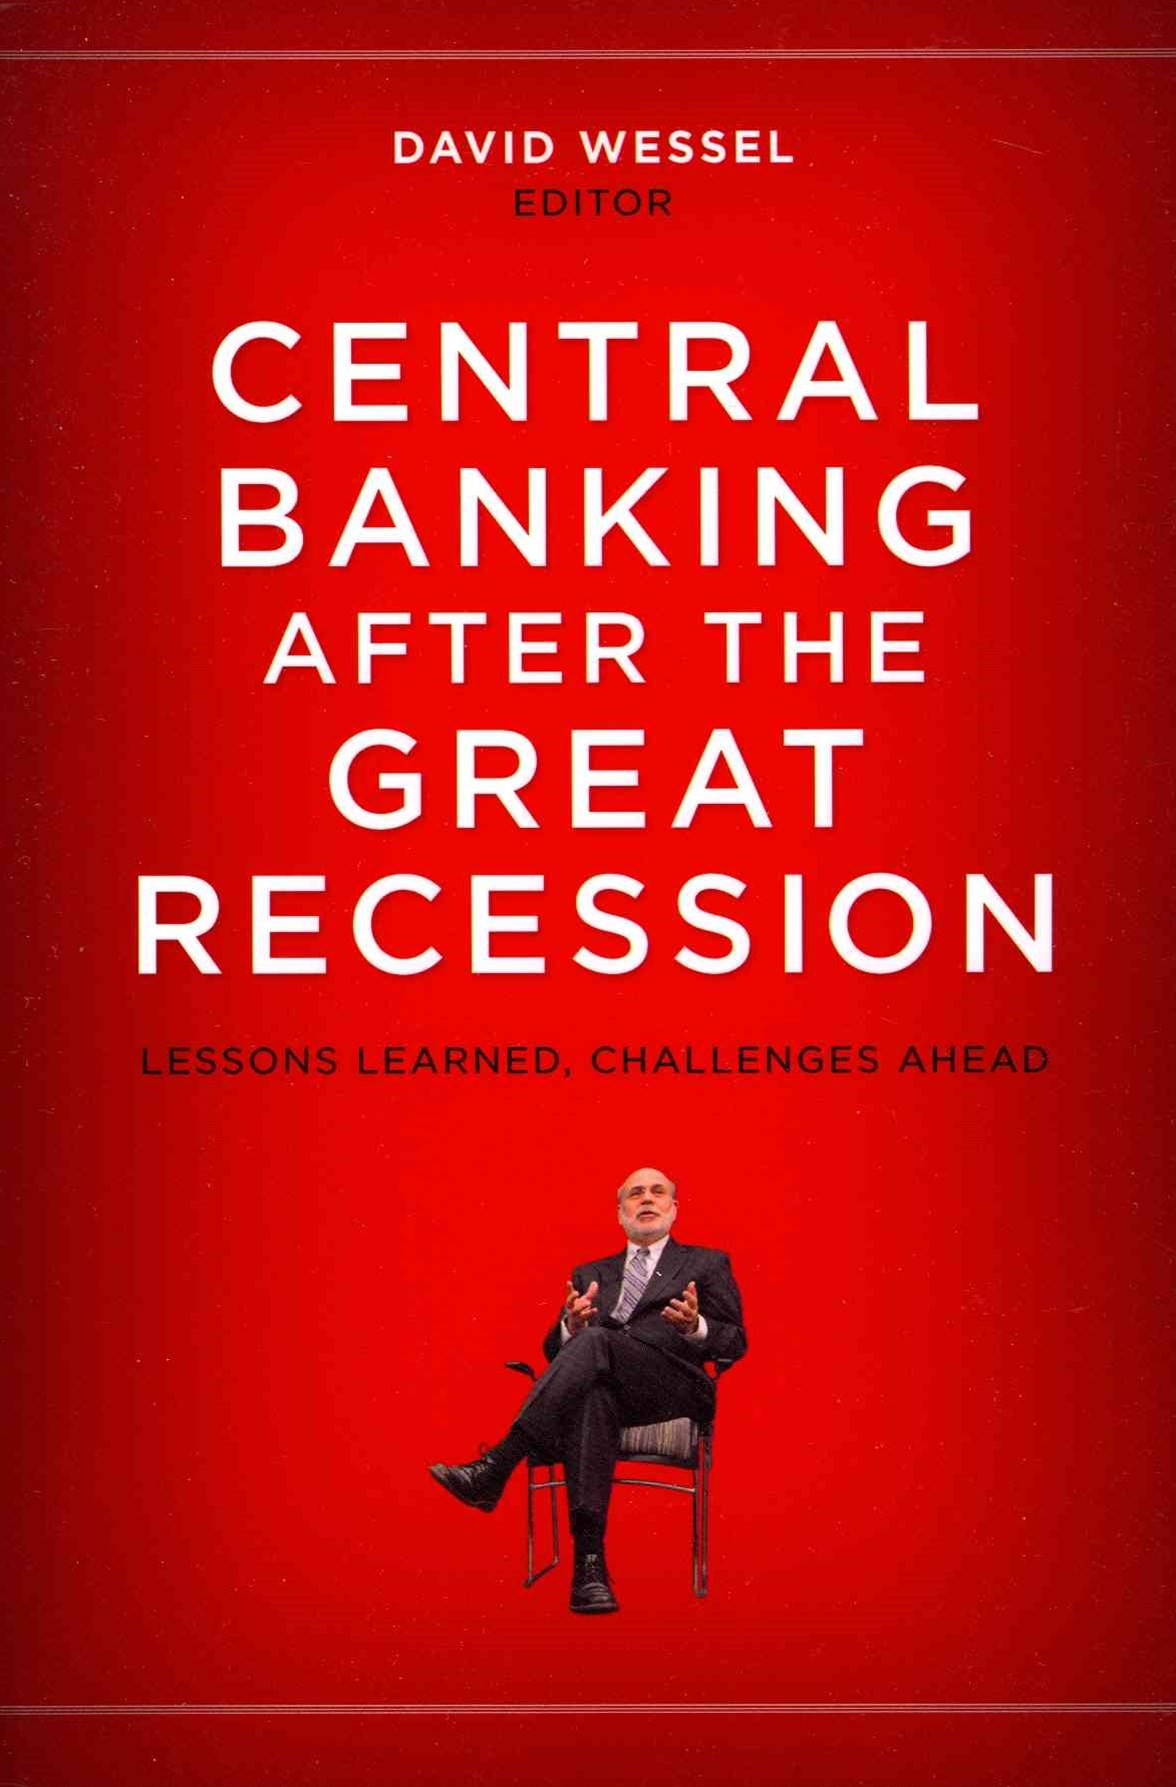 Central Banking after the Great Recession